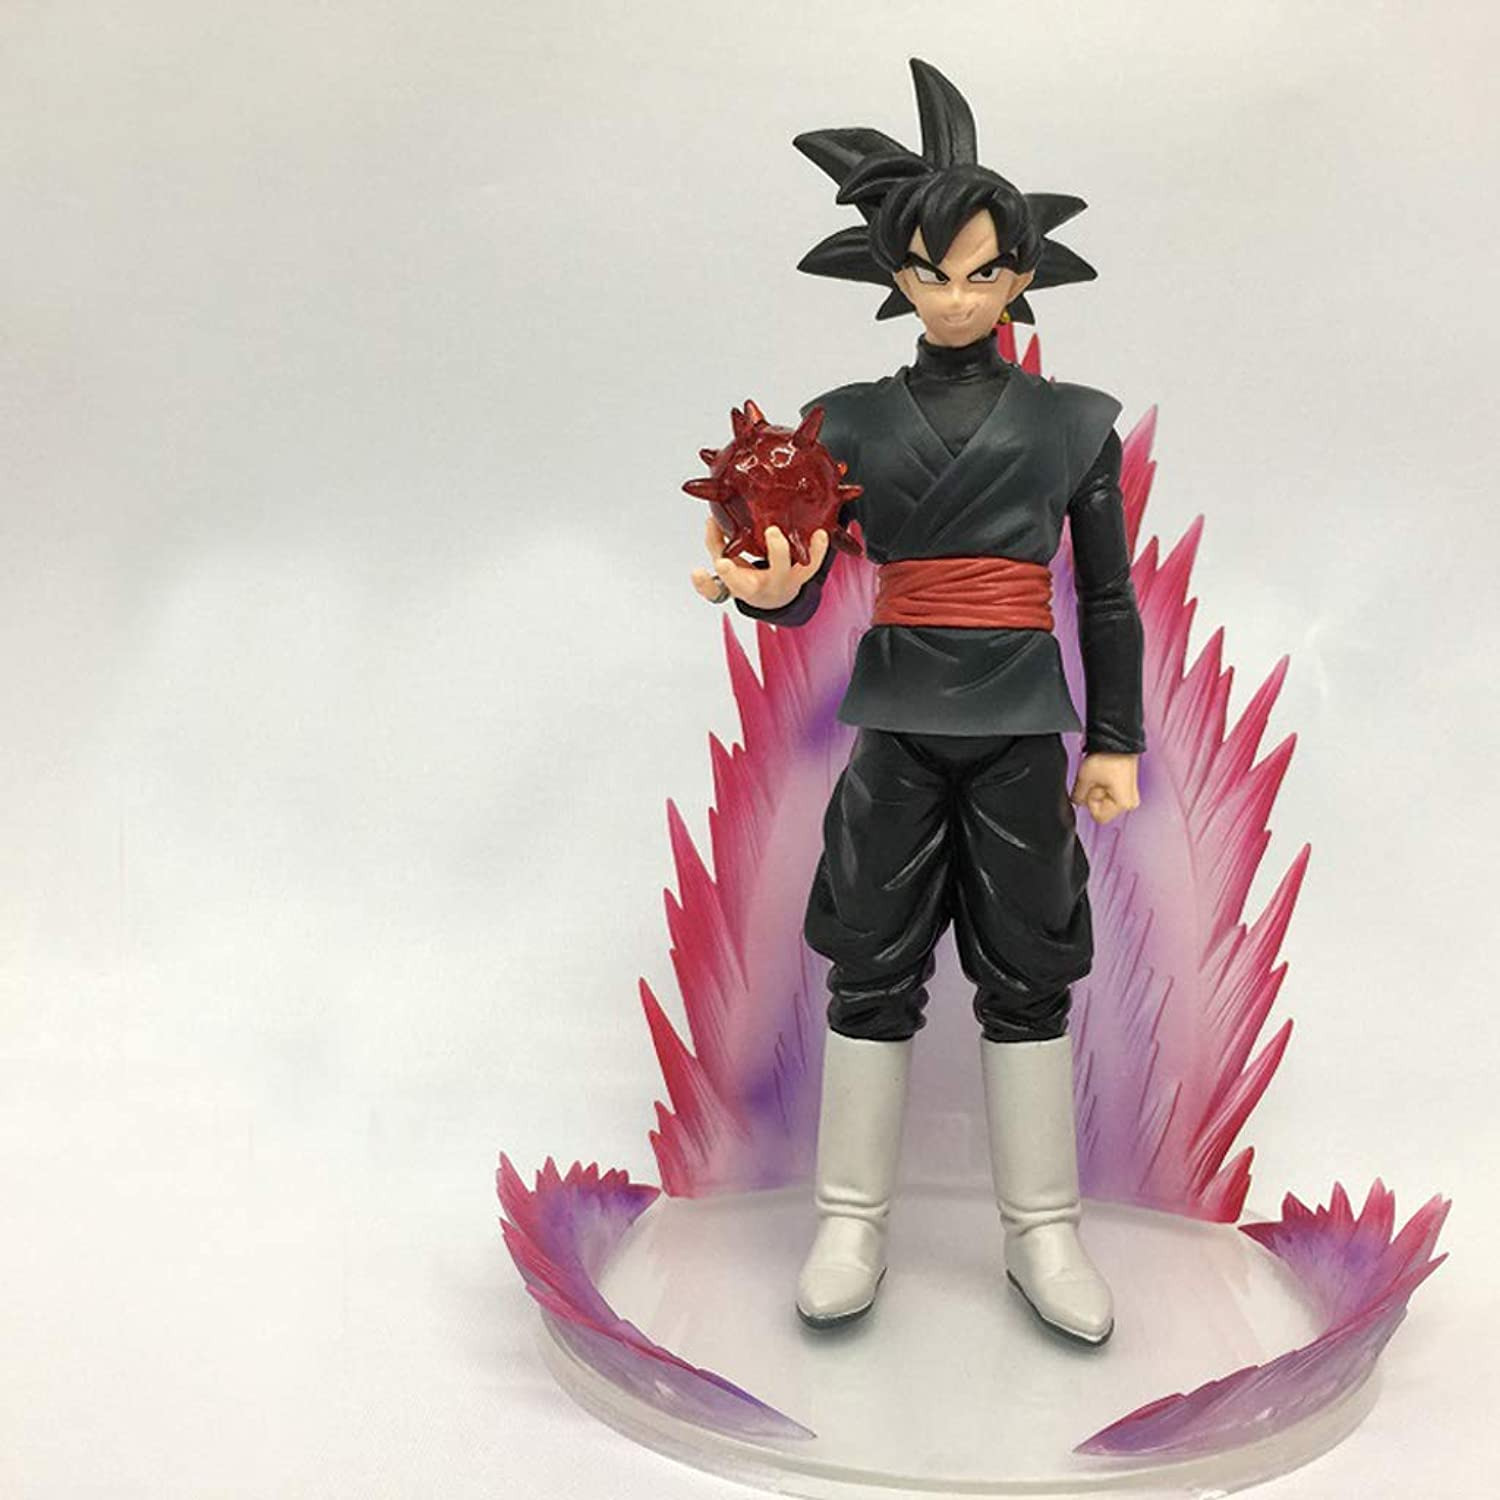 Zxwzzz Toy Statue Dragon Ball Toy Statue Saiyan Toy Model Cartoon Character Decoration Crafts Dark Sun Wukong Statue (color   A)